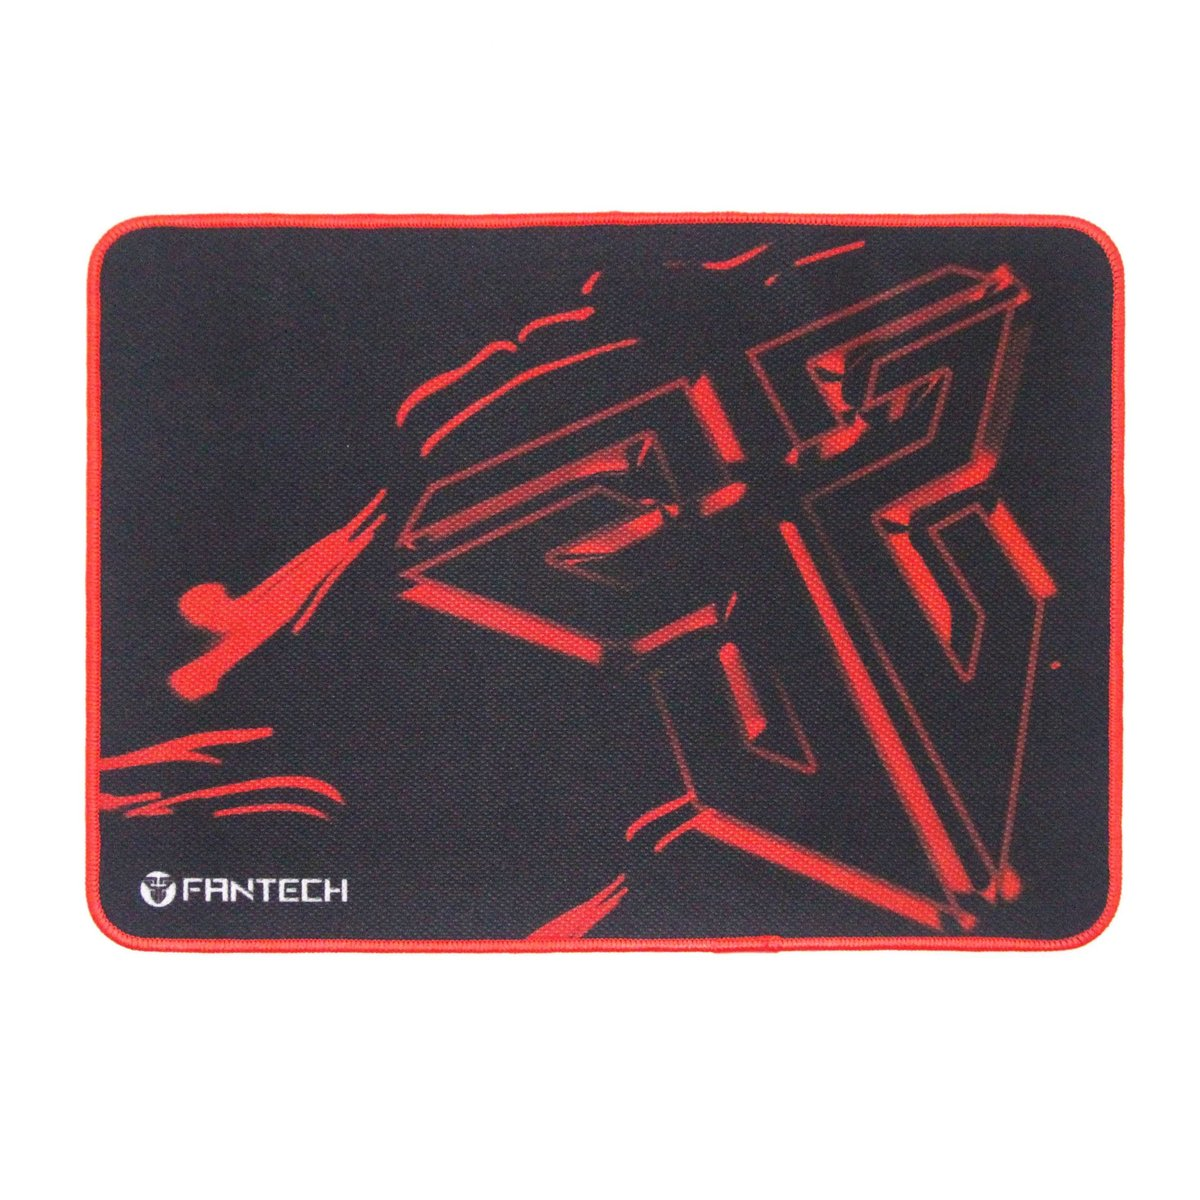 MP35 GAMING MOUSE PAD 滑鼠墊 350mm x 250mm x 4mm